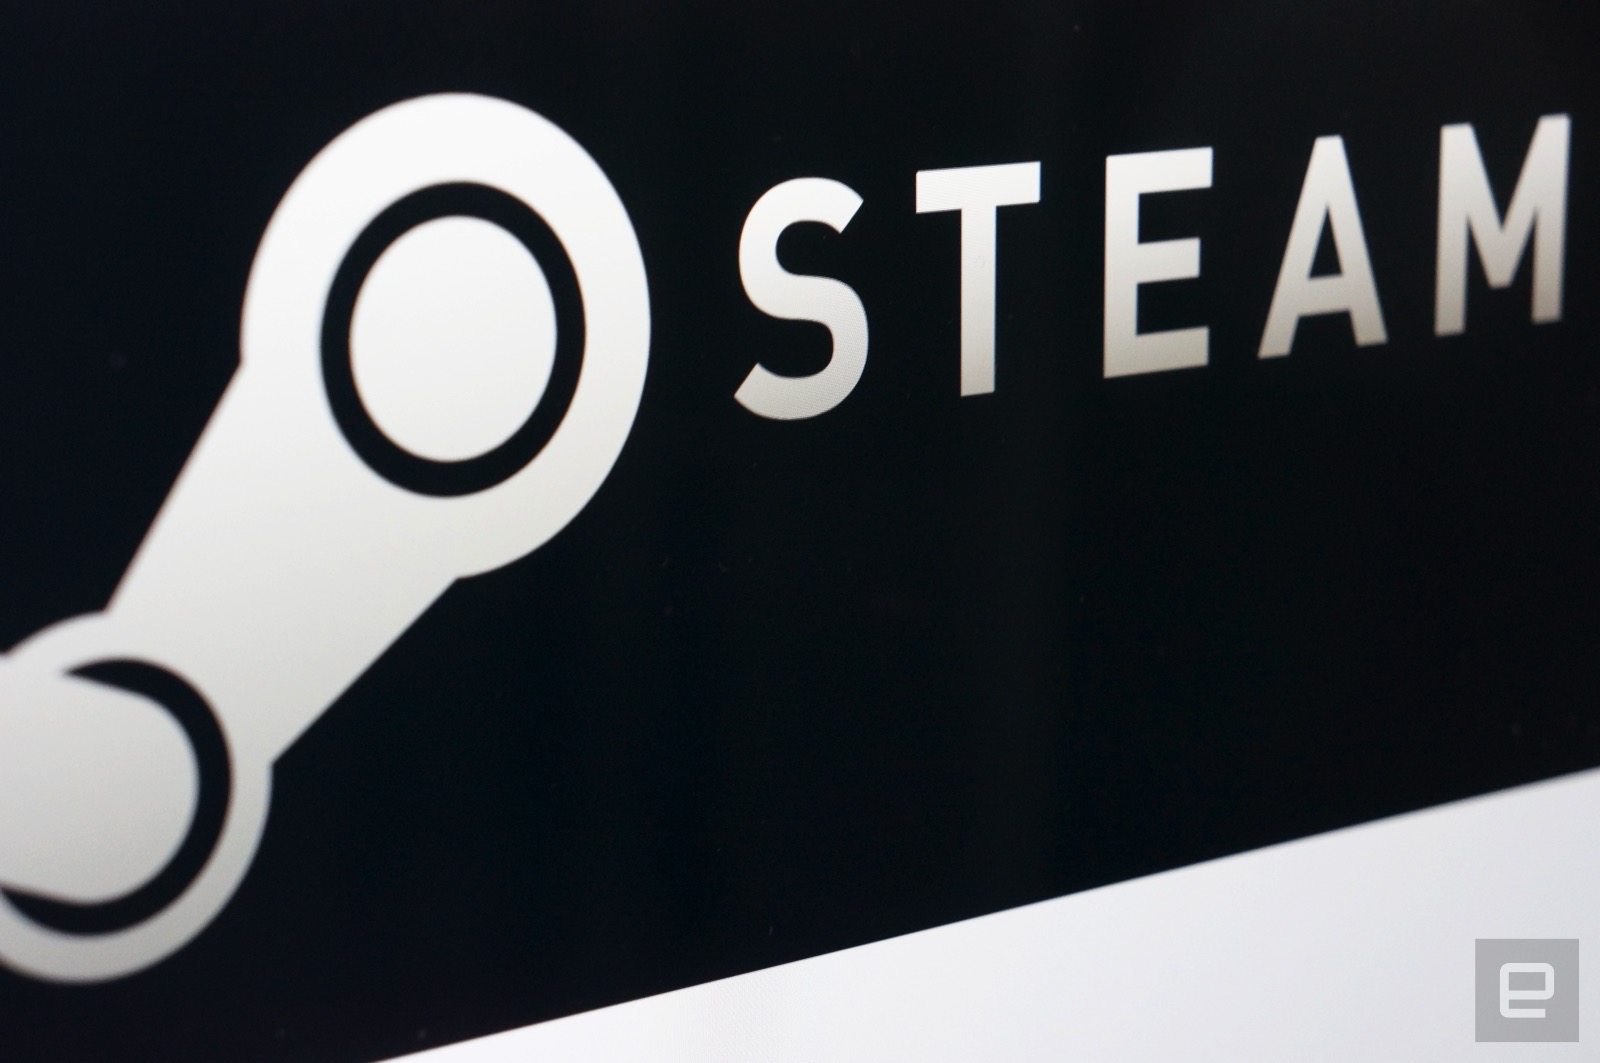 steam-logo-black-and-white.jpg